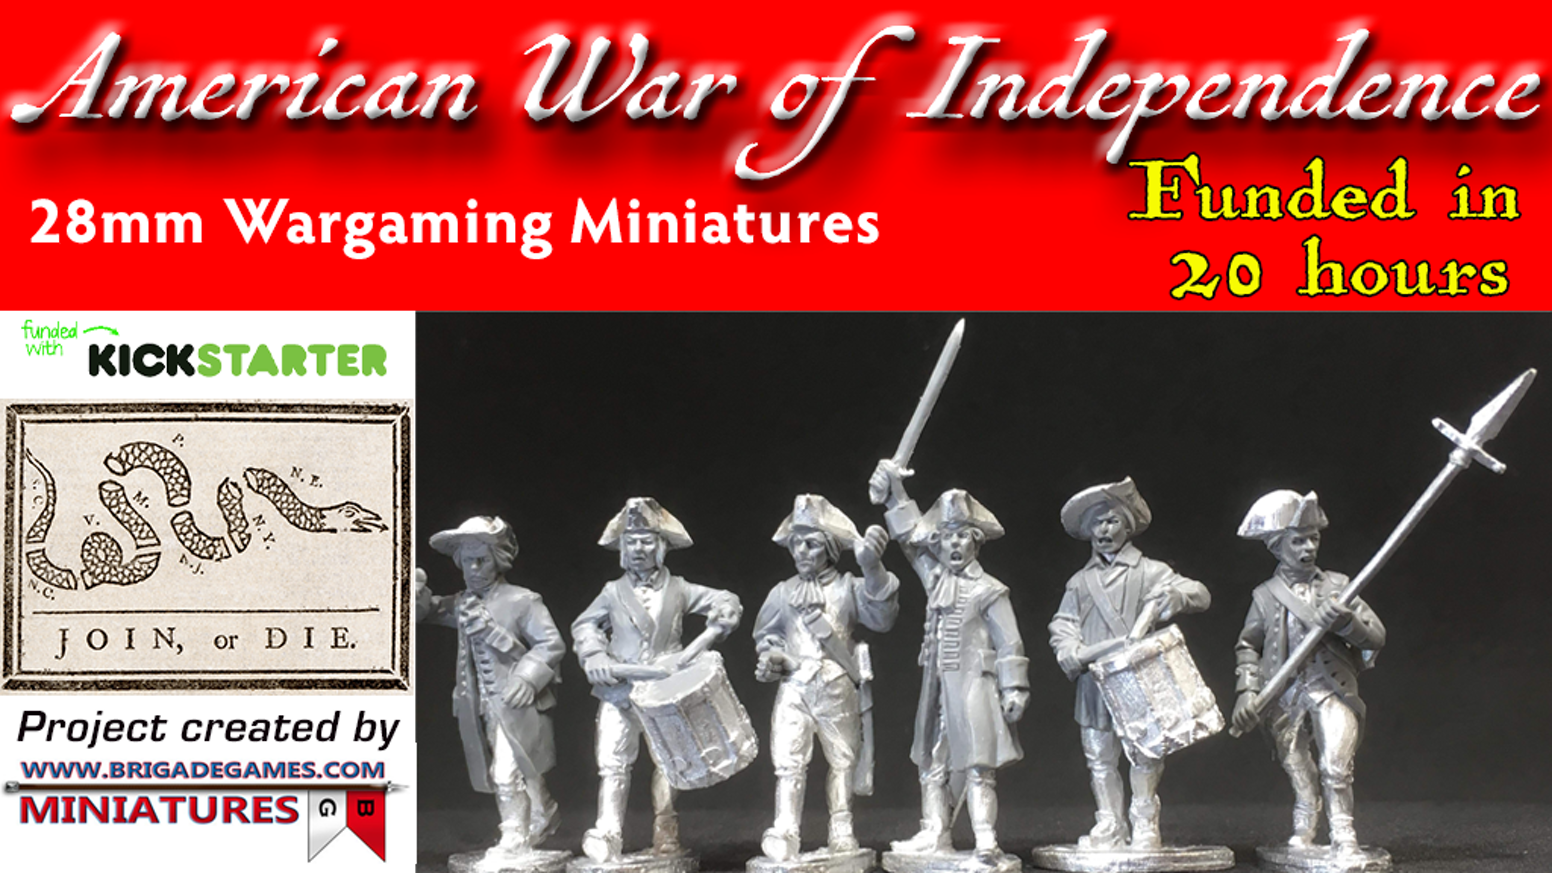 To help fund the start of a range of 28mm American War of Independence (Revolutionary War) miniatures sculpted by Paul Hicks.